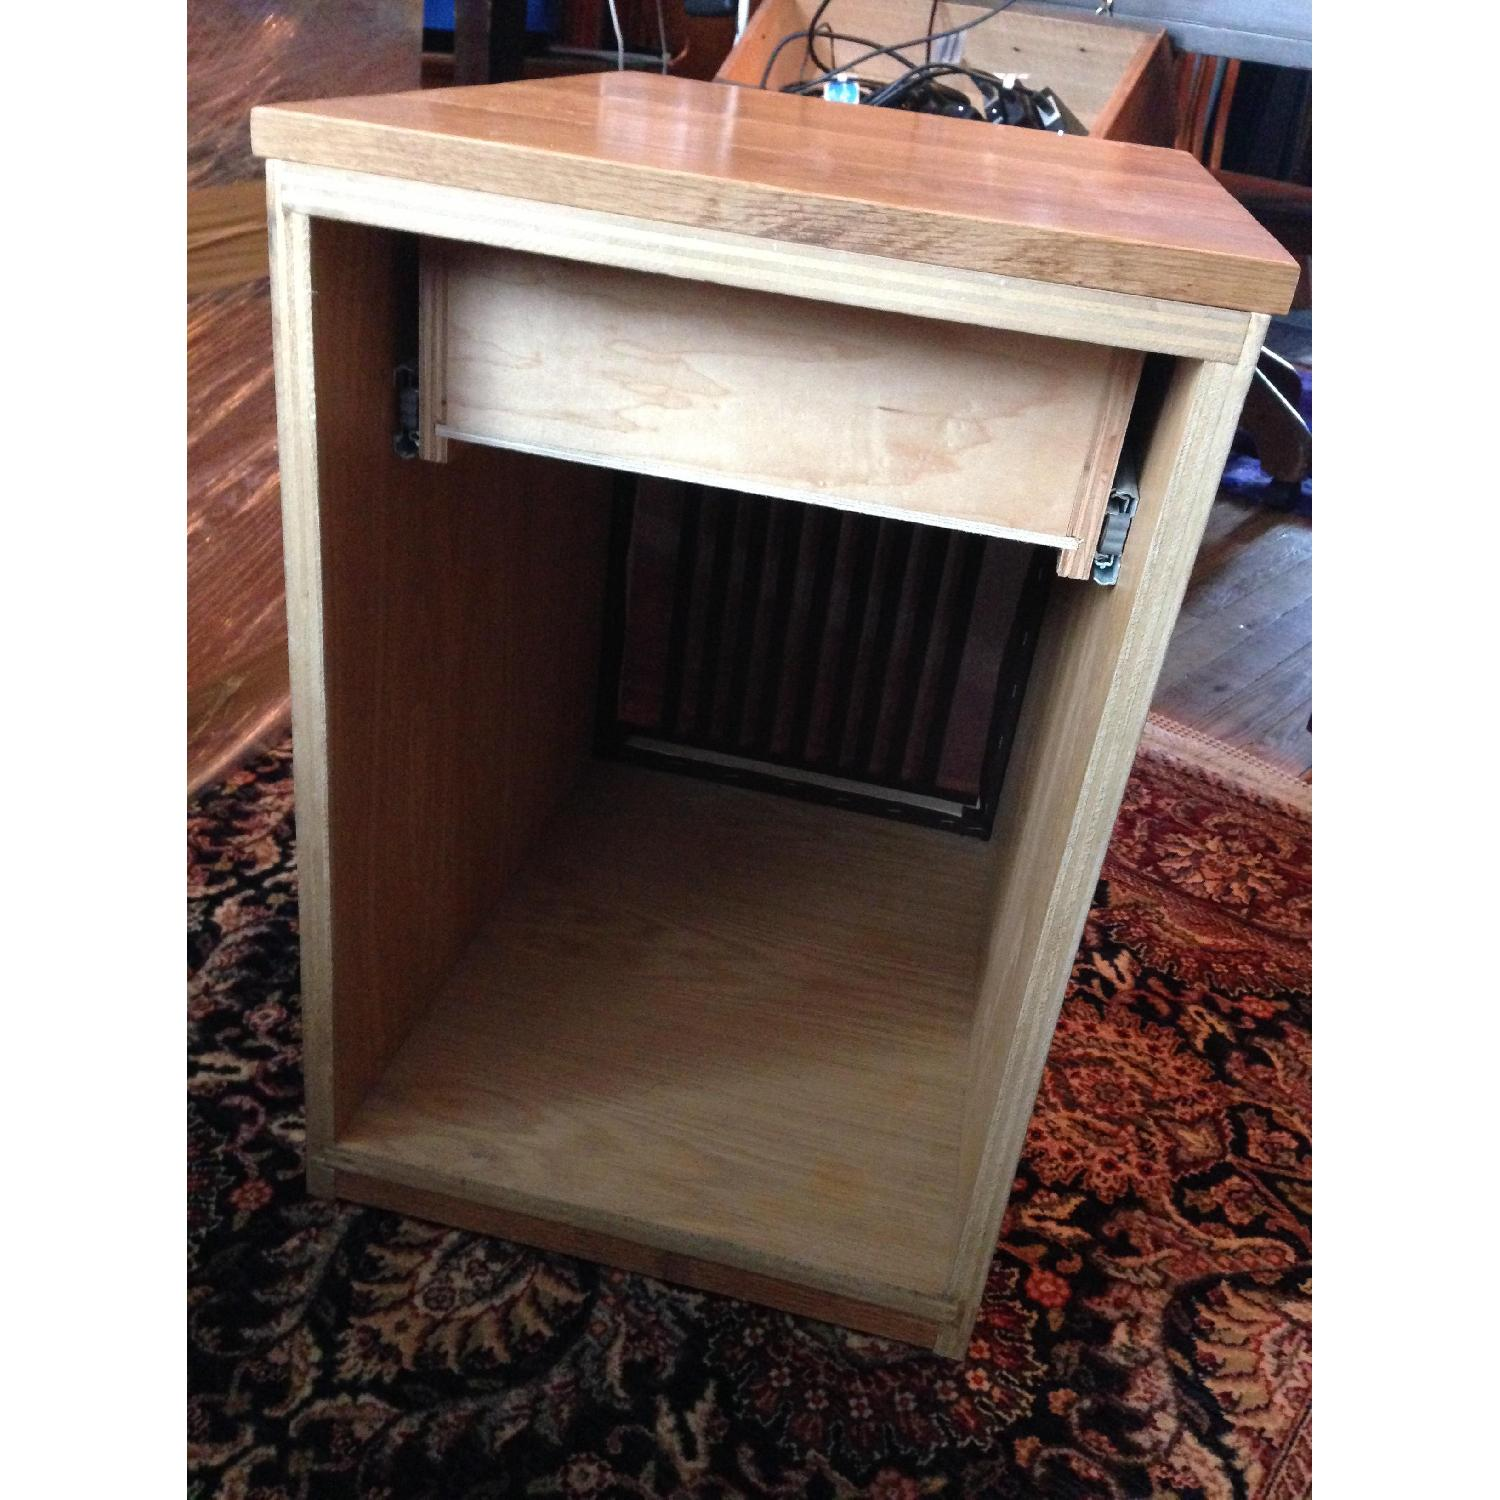 End Table w/ Subwoofer Cabinet - image-2